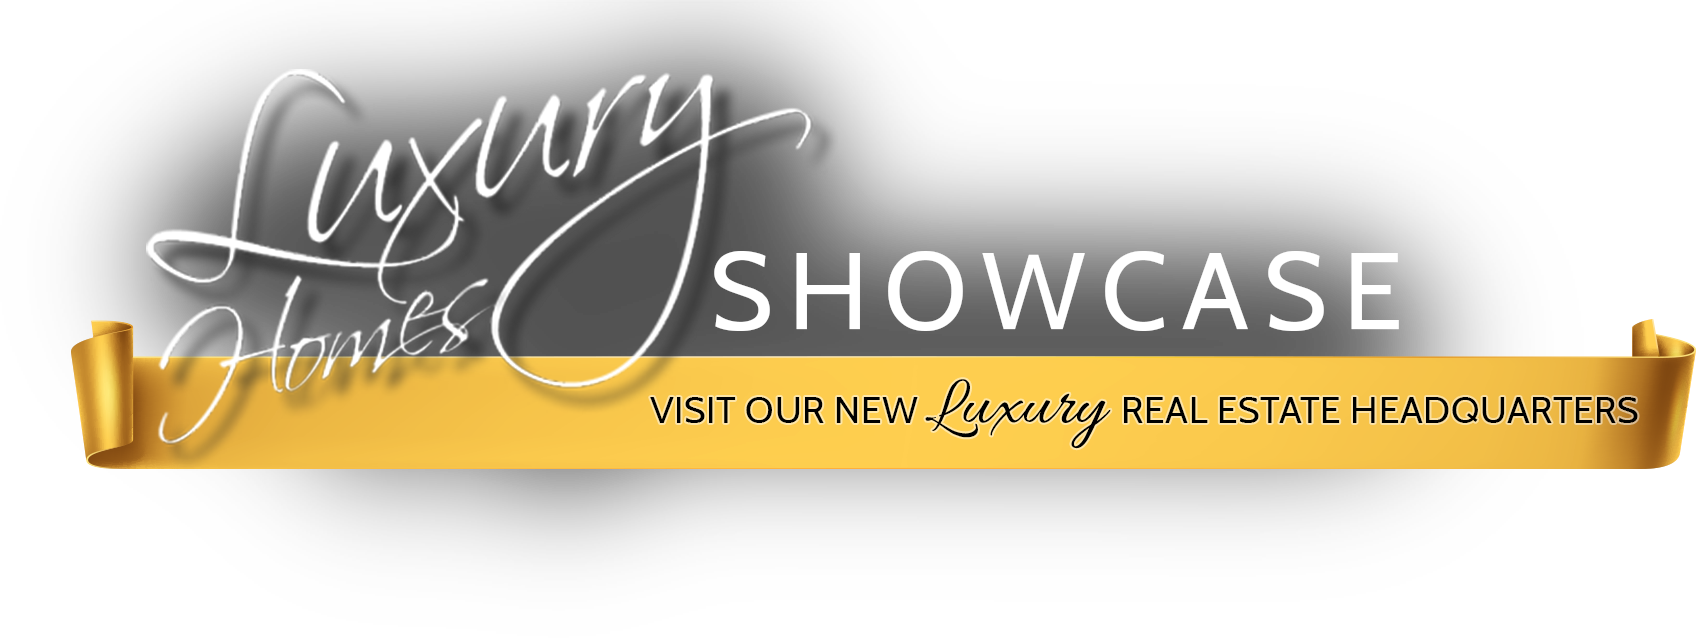 Luxury Homes Showcase